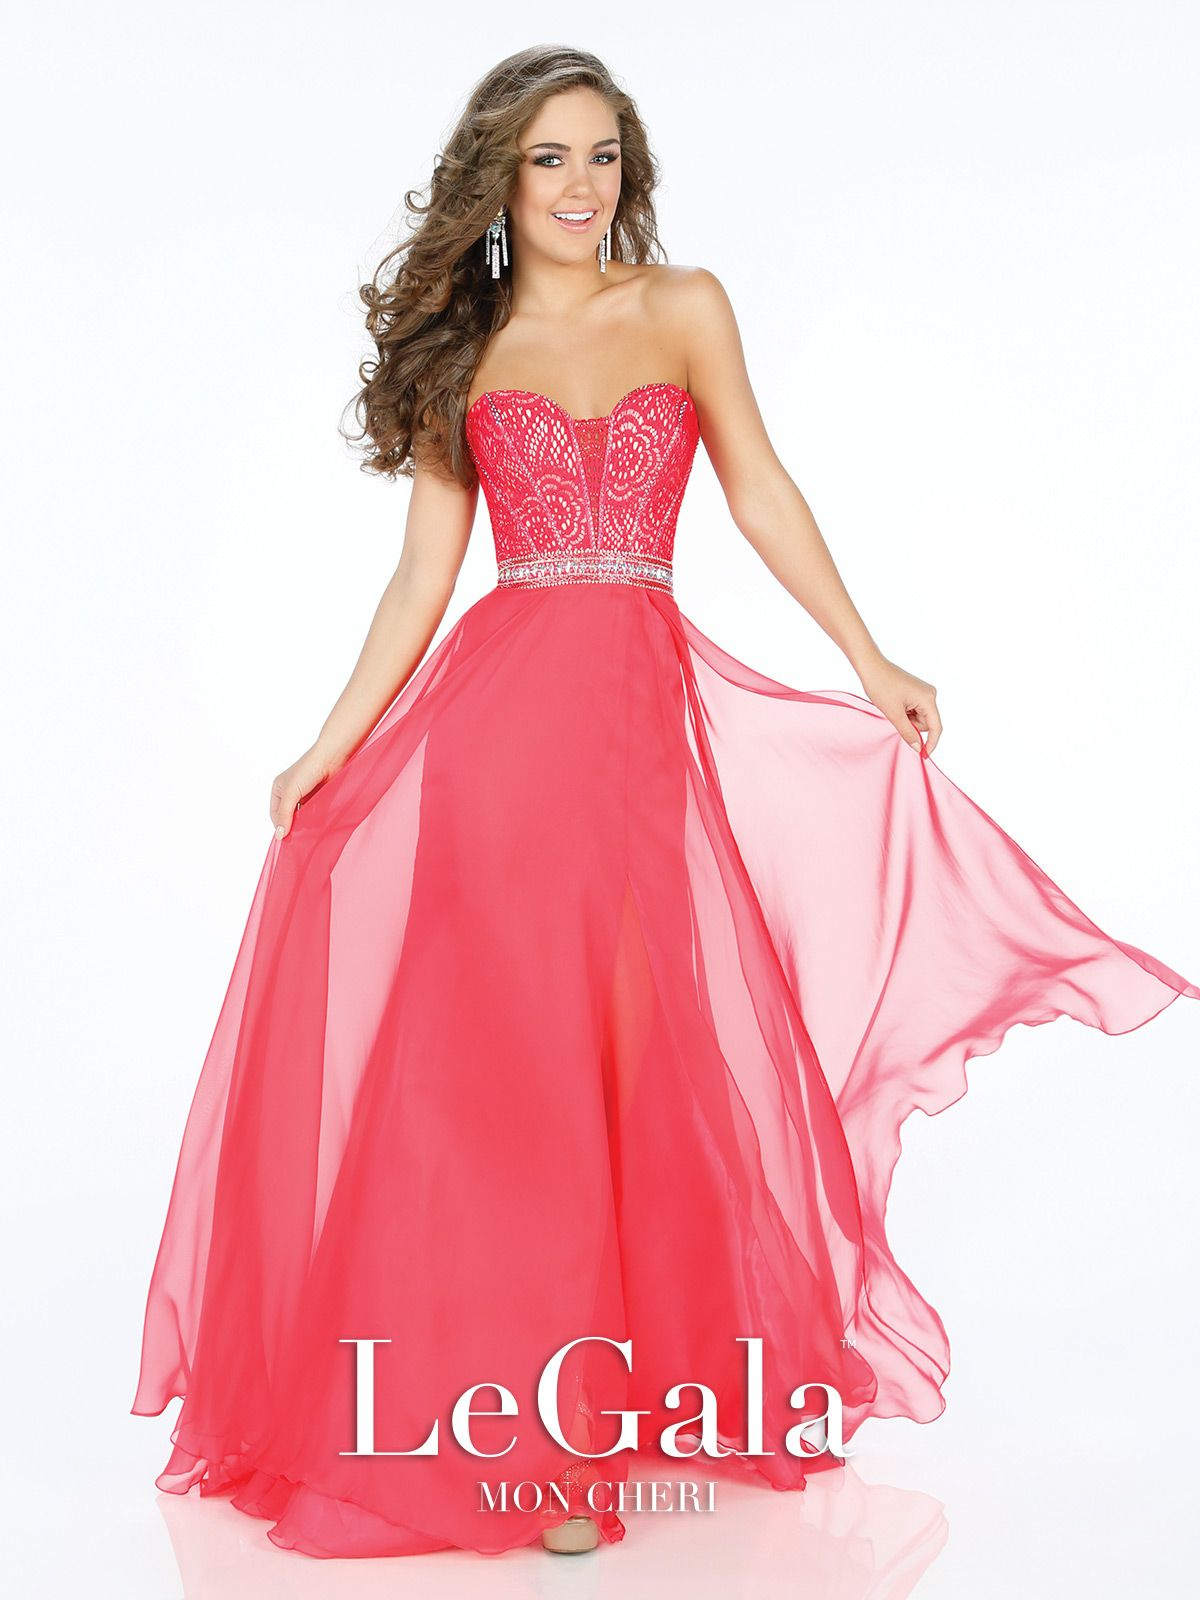 Le Gala by Mon Cheri Prom 2016. Strapless chiffon A-line gown ...